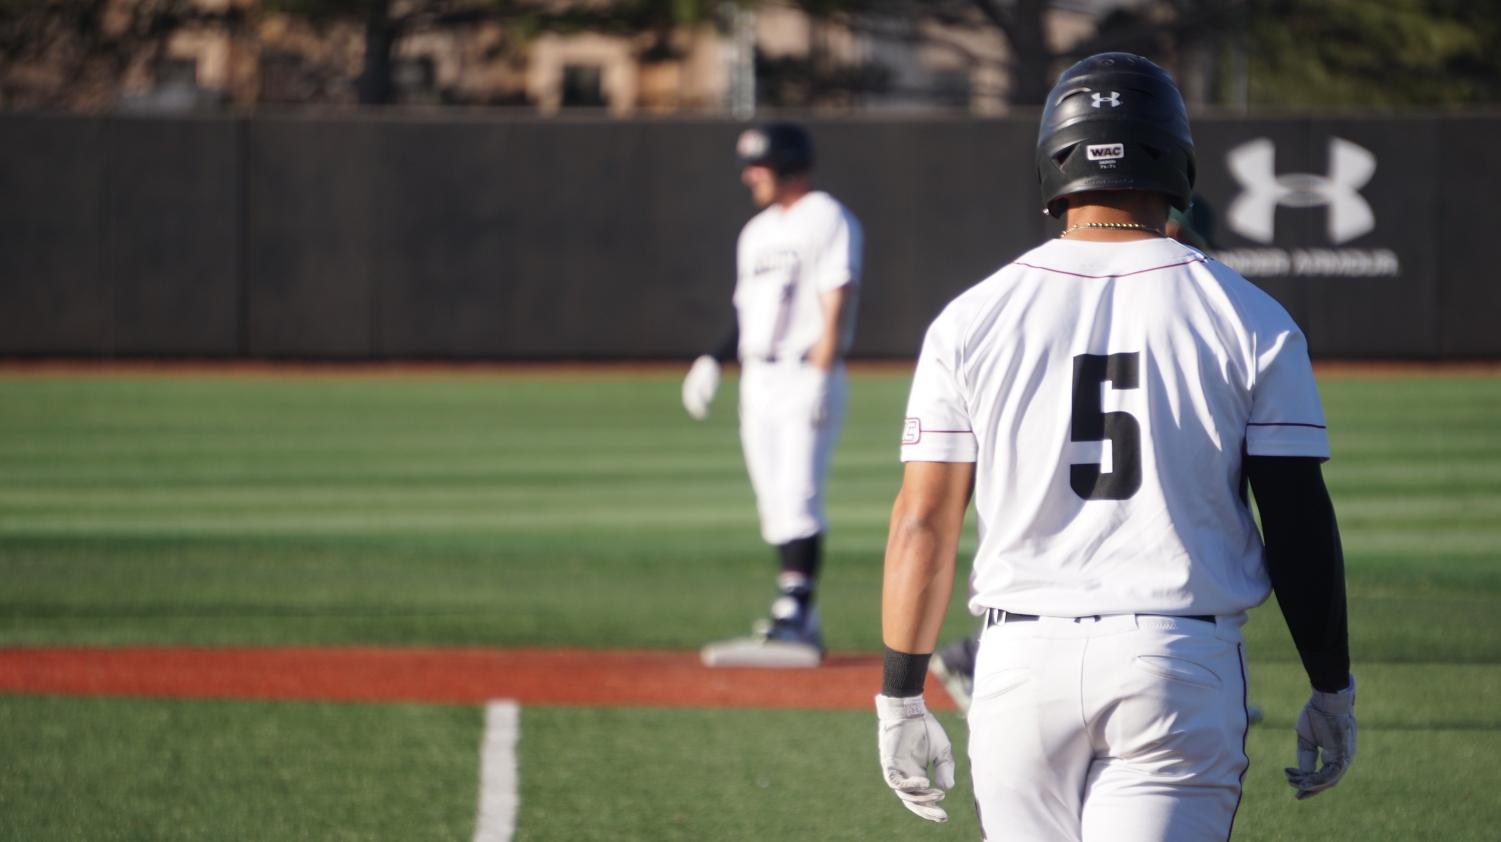 Junior outfielder Tristen Carranza takes a lead Friday evening at the 'Skew as his team set a new program record for most runs in a single-game; NMSU defeated MVSU 39-0.